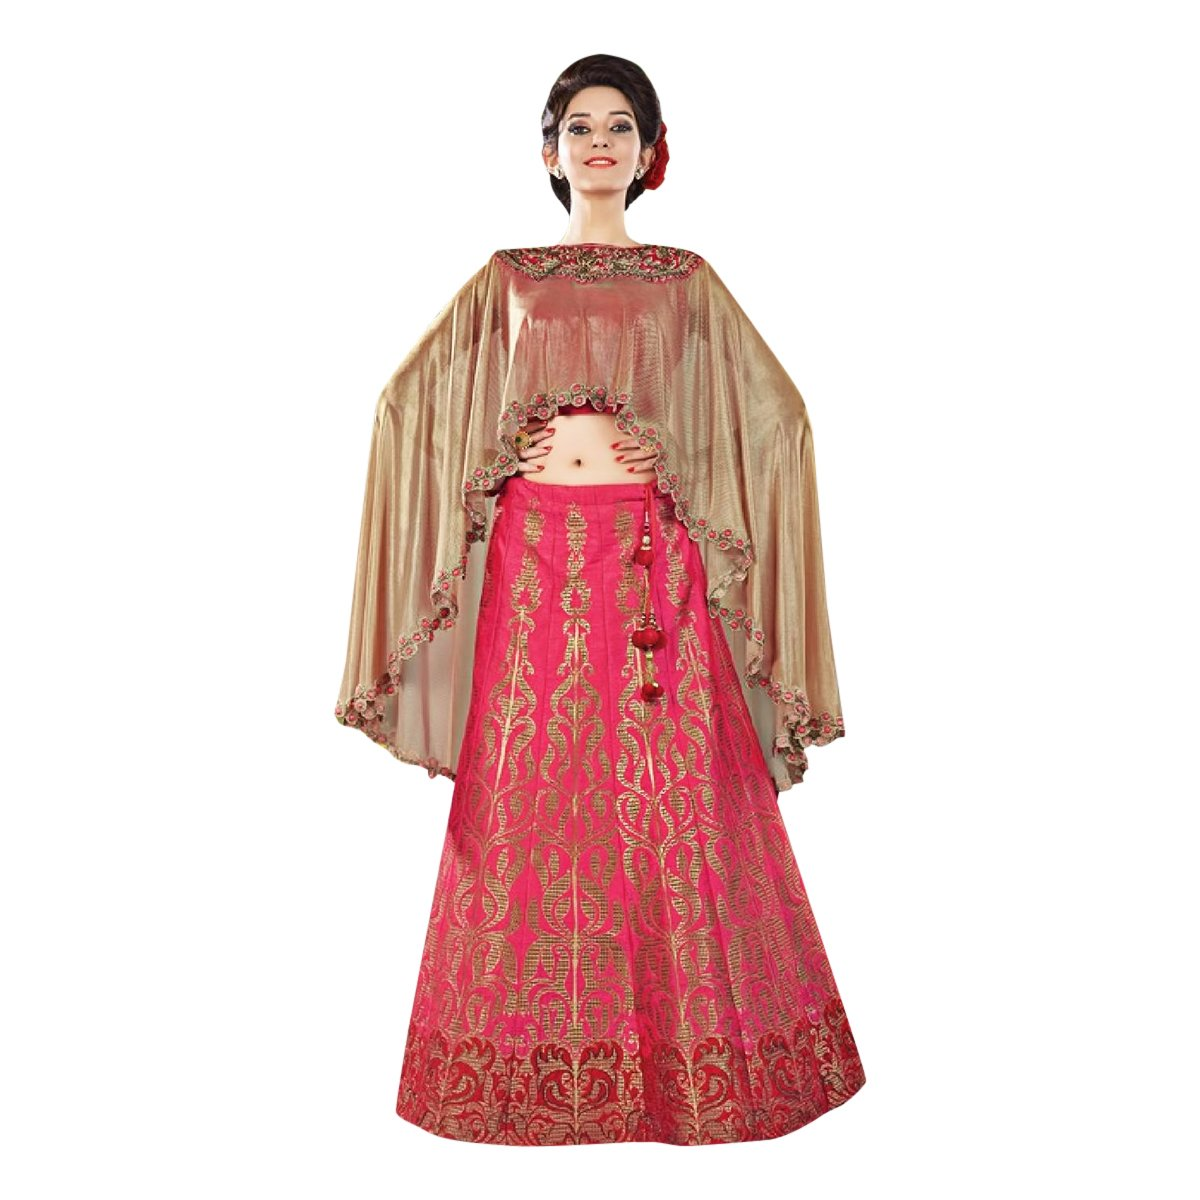 Cape Bollywood Women Lehenga Choli Dupatta Ceremony Bridal Wedding Women Blouse Collection 618 4